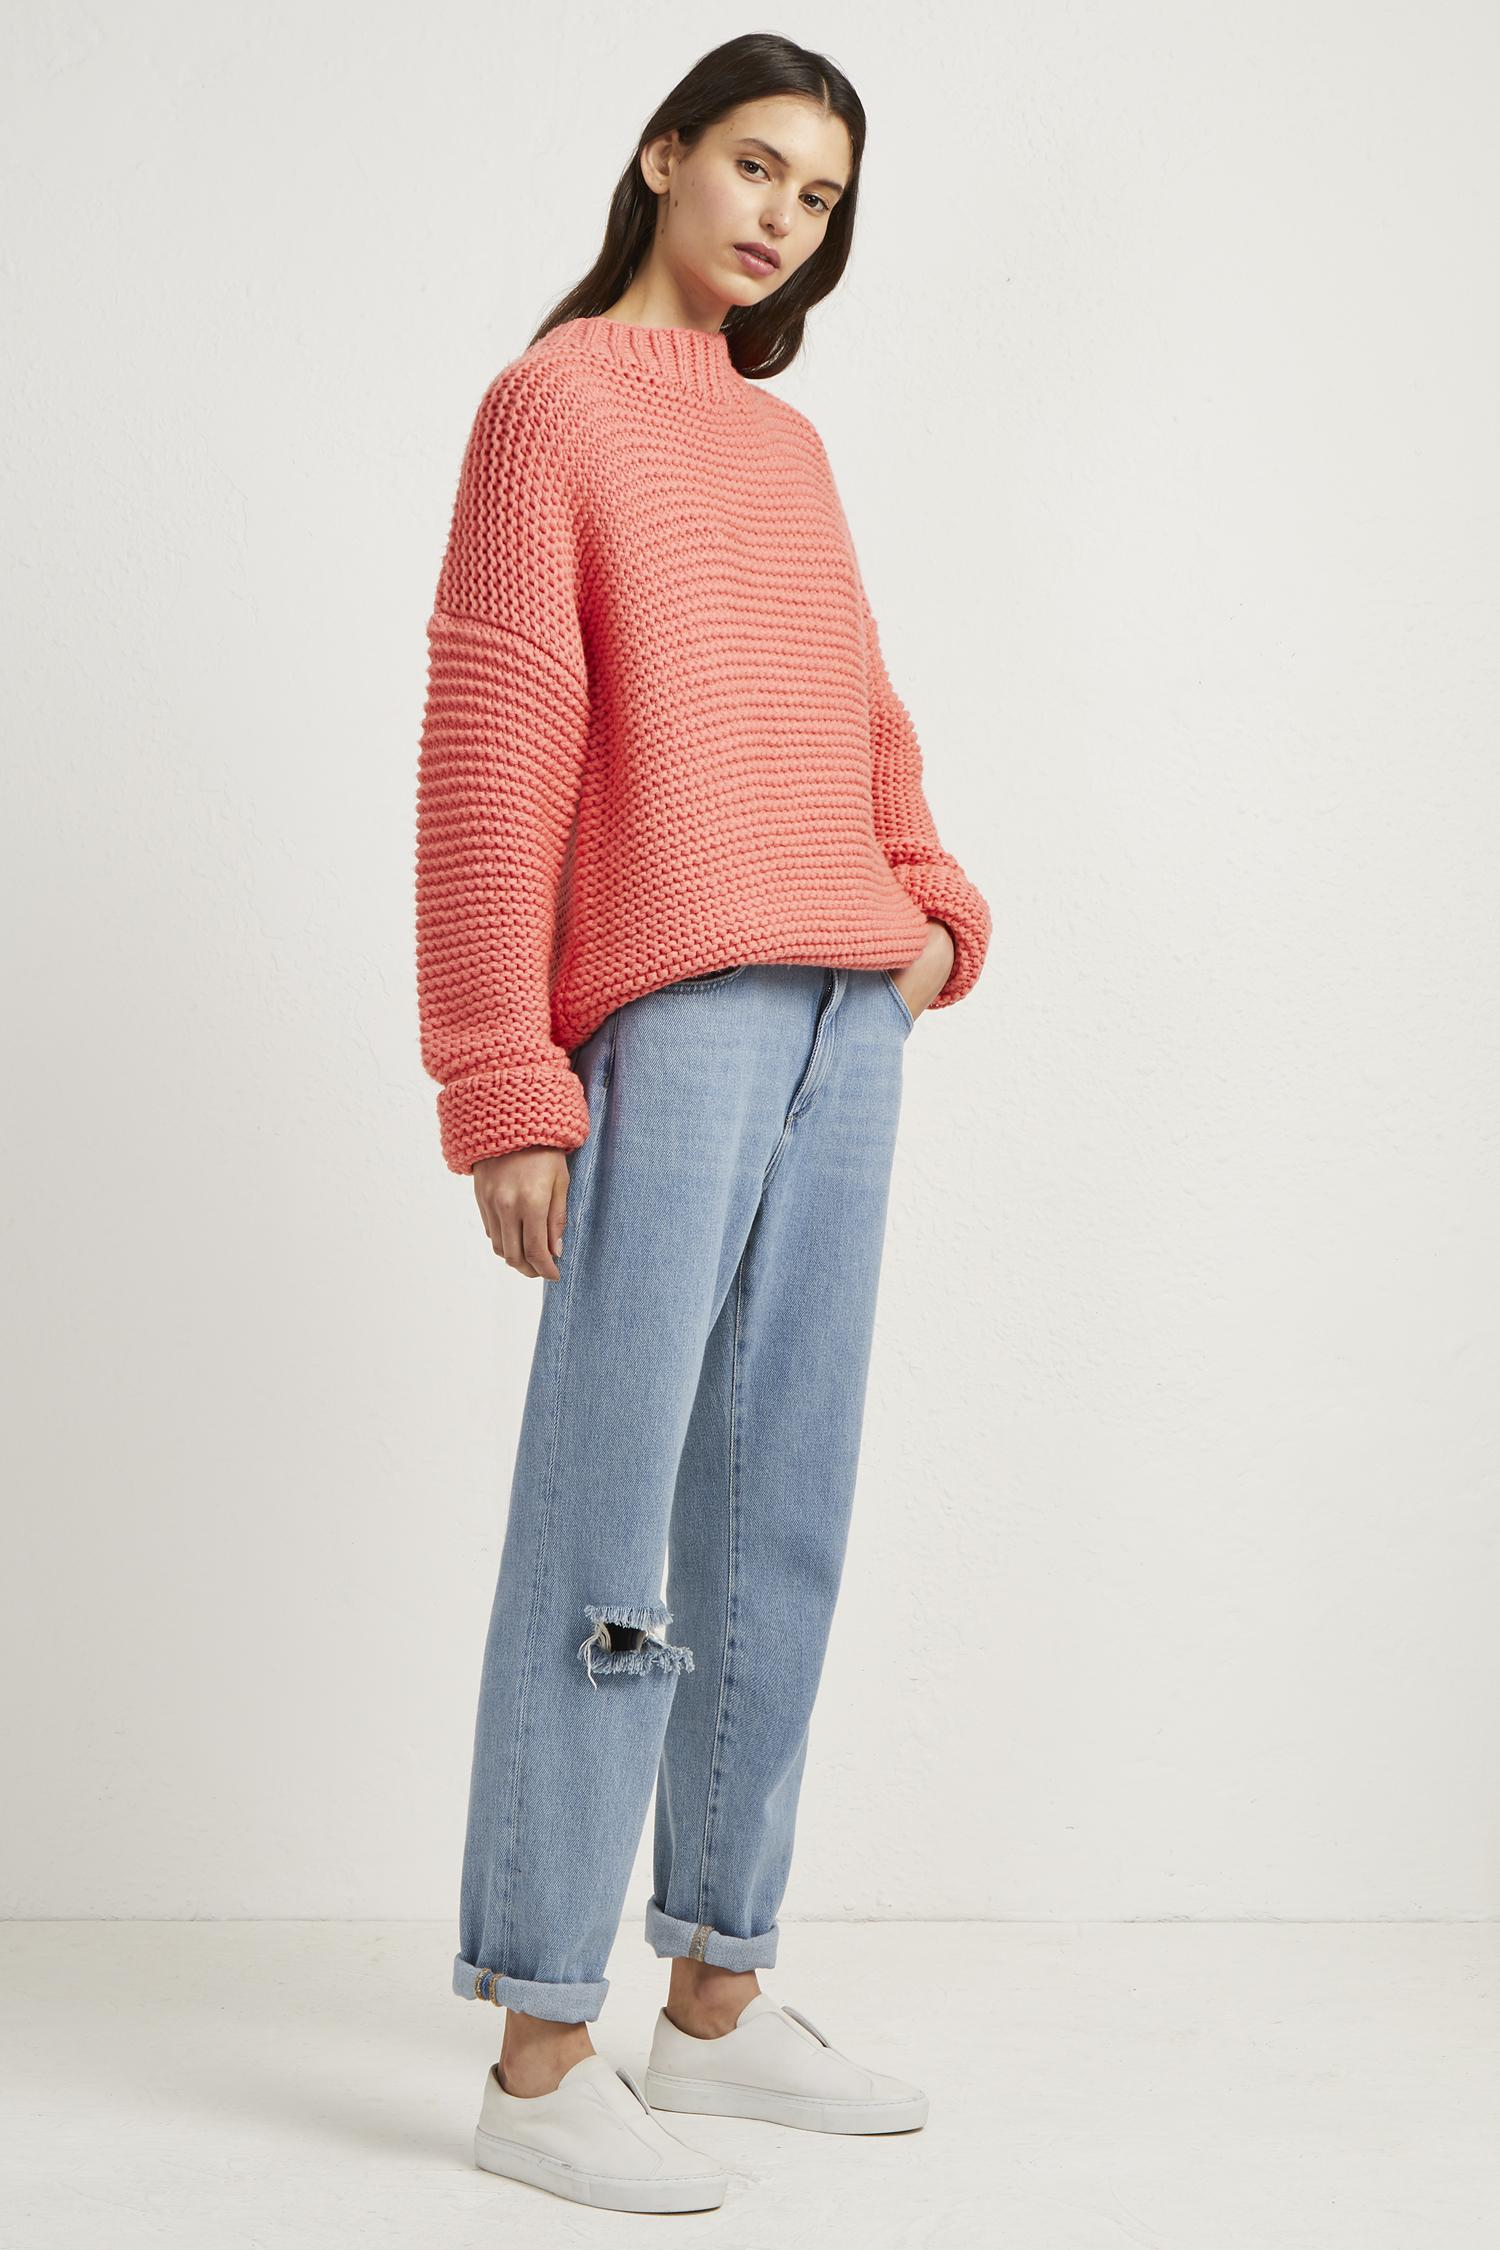 ea1d8b72e0d Lyst - French Connection Neve Links Knit Jumper